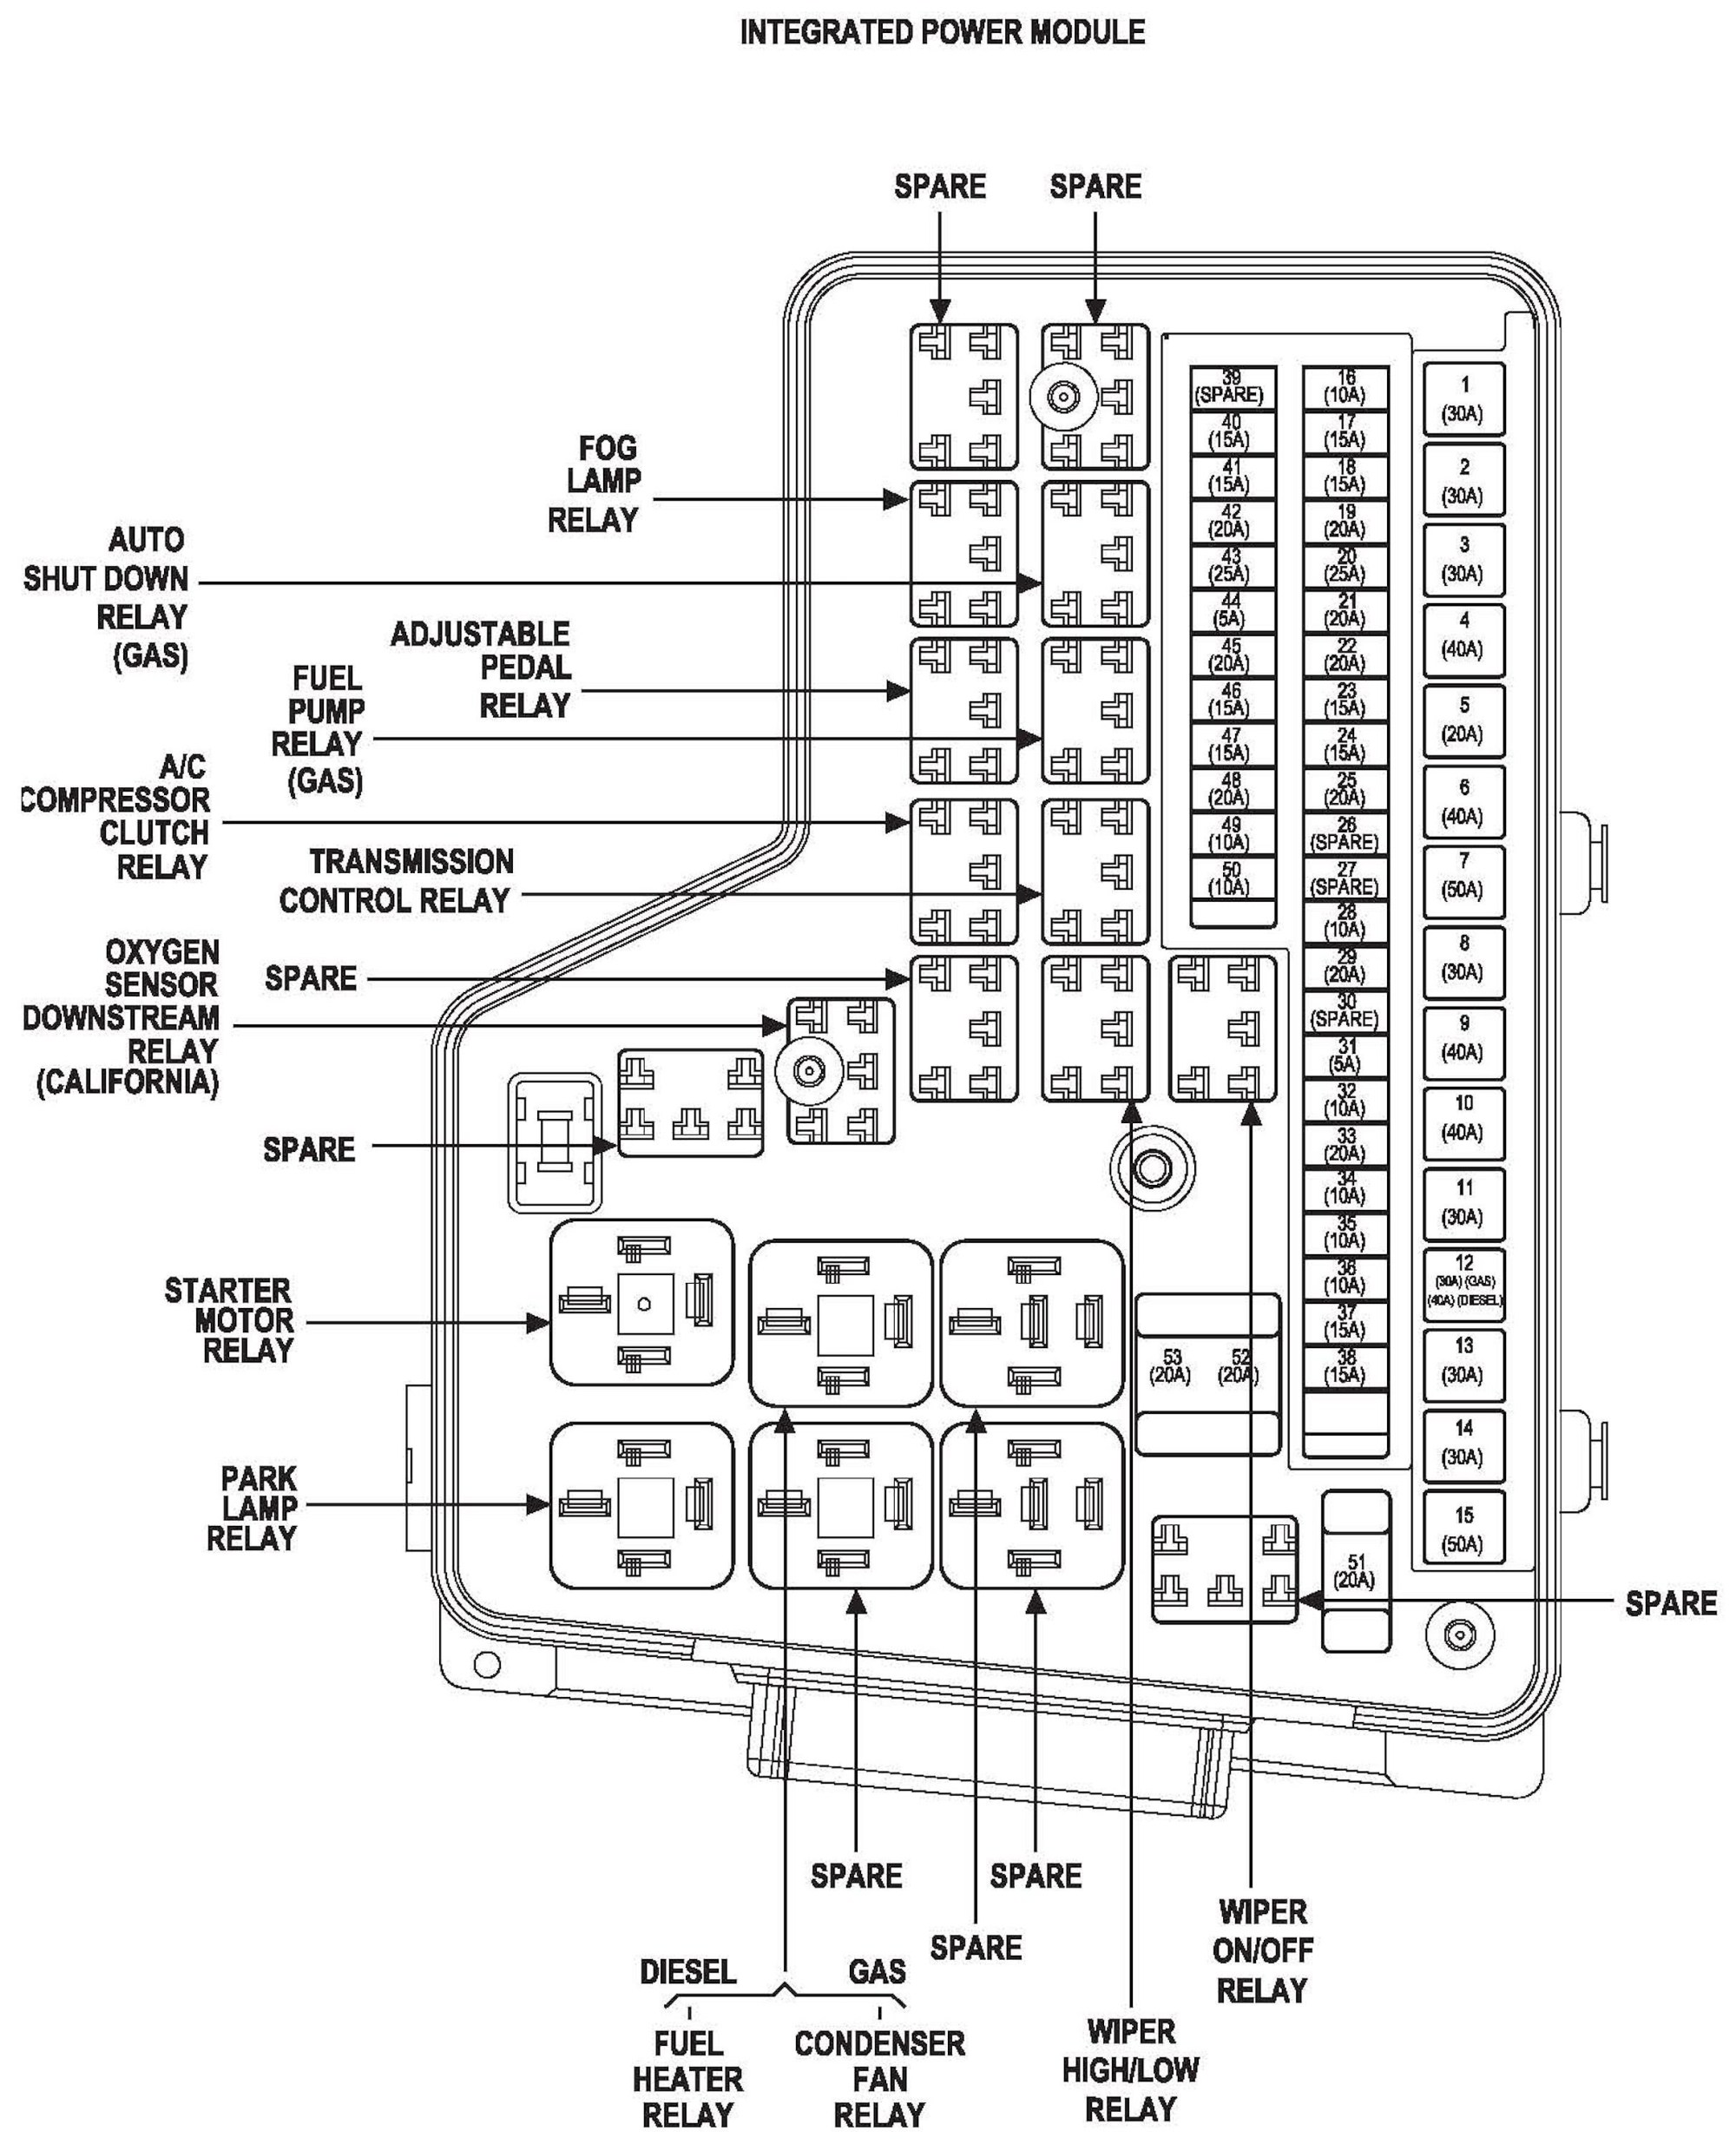 hight resolution of 98 dodge 3500 fuse diagram manual e book fuse box 2009 dodge ram 1500 fuse box dodge ram 1500